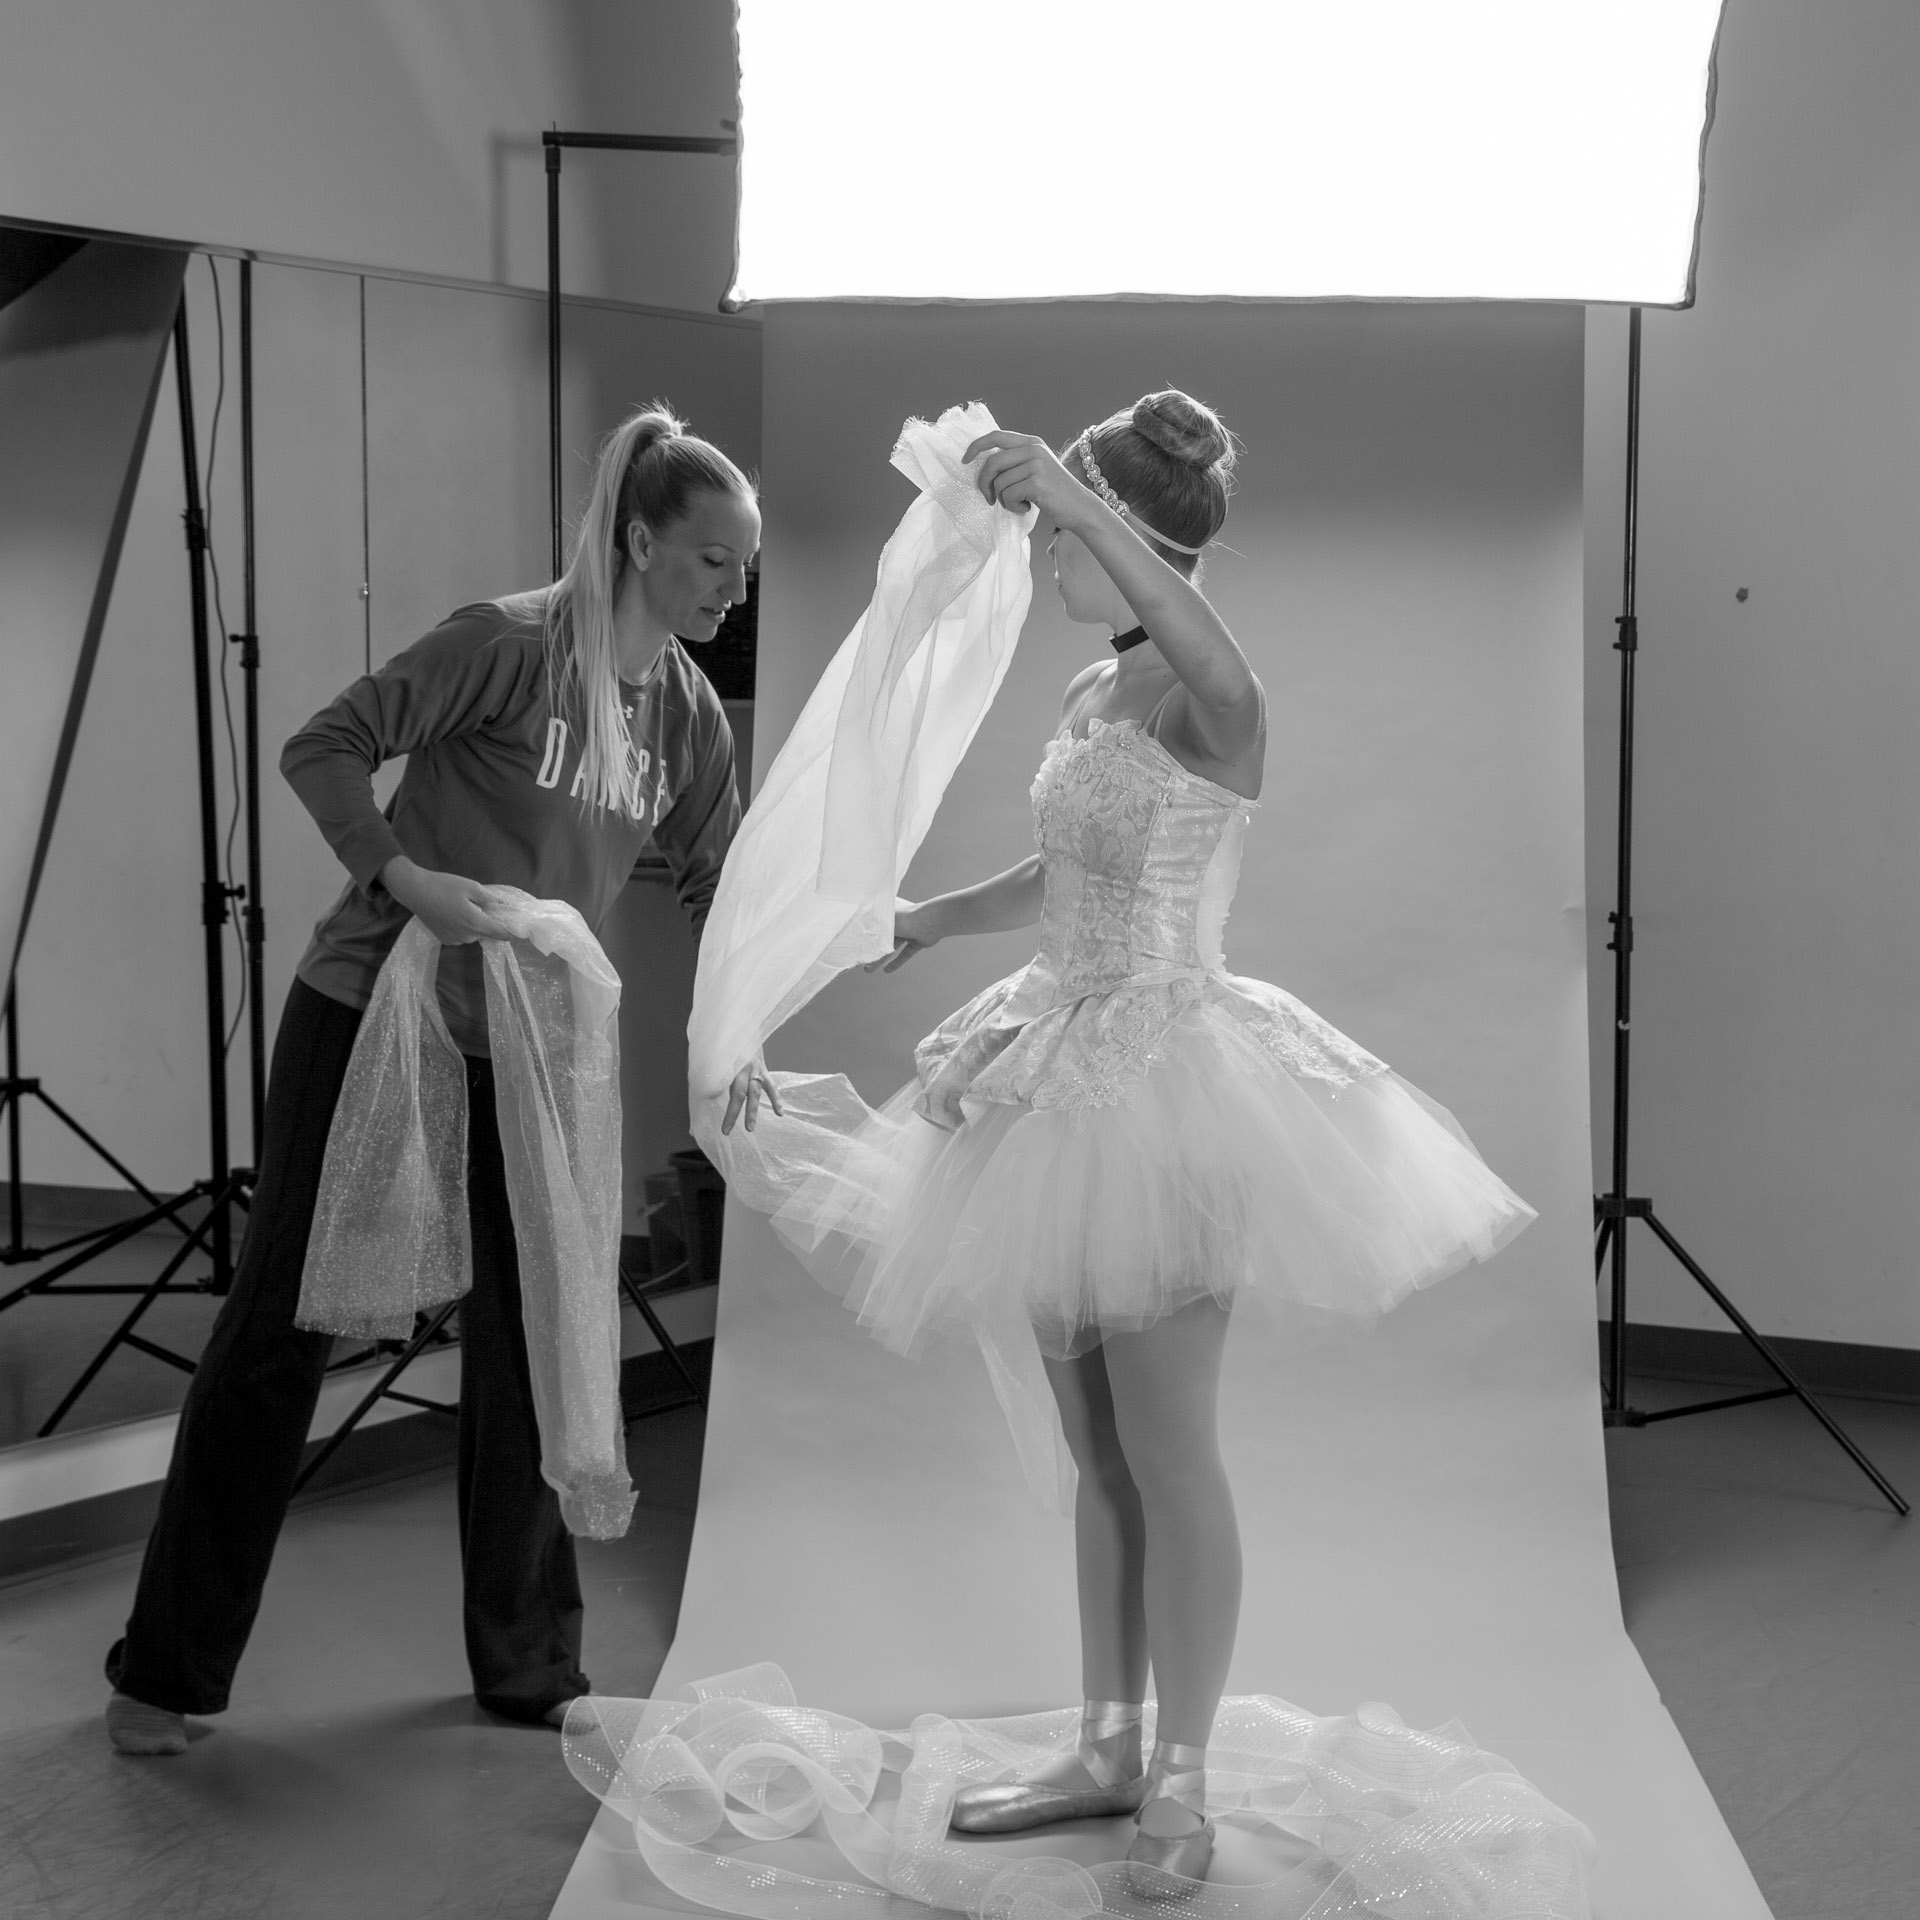 Woman draping tulle and ballerina dressed in Cinderella tutu assisting in front of photo backdrop